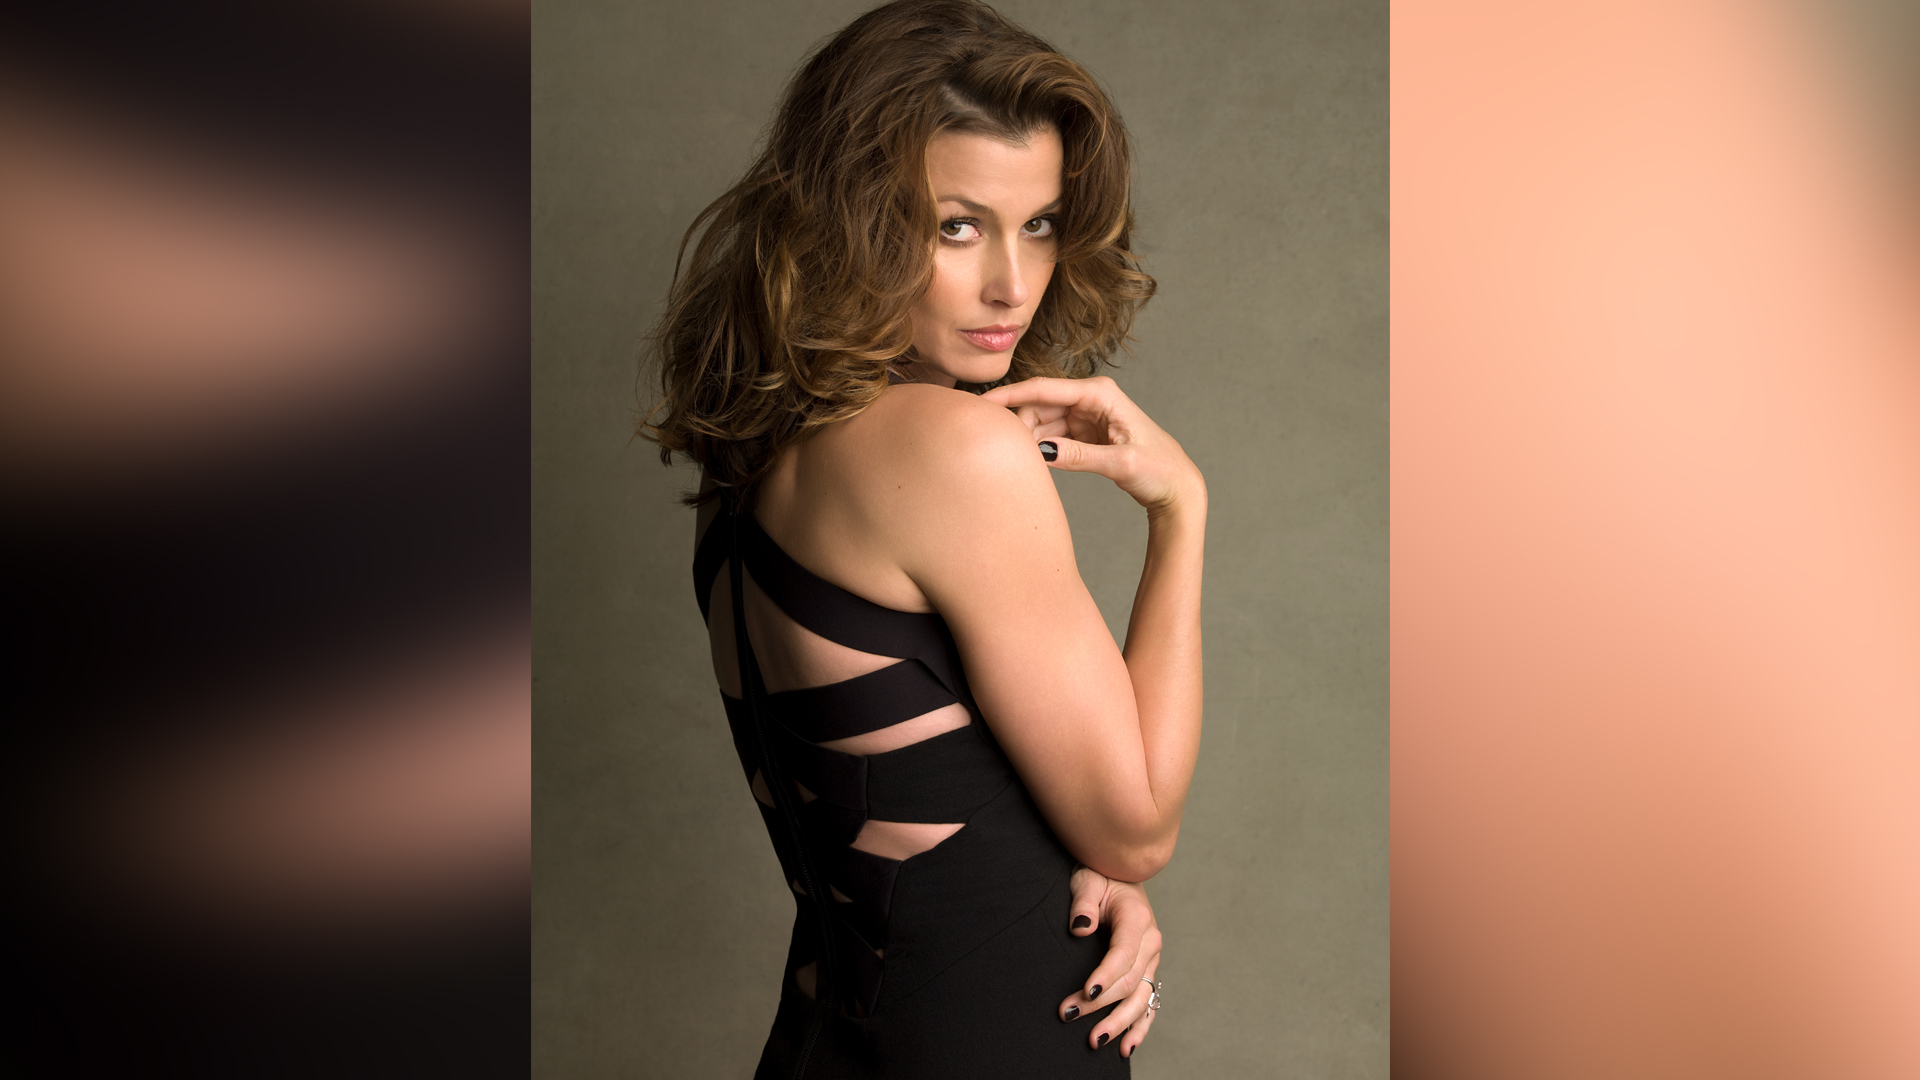 Former model Bridget Moynahan has mastered the sultry stare